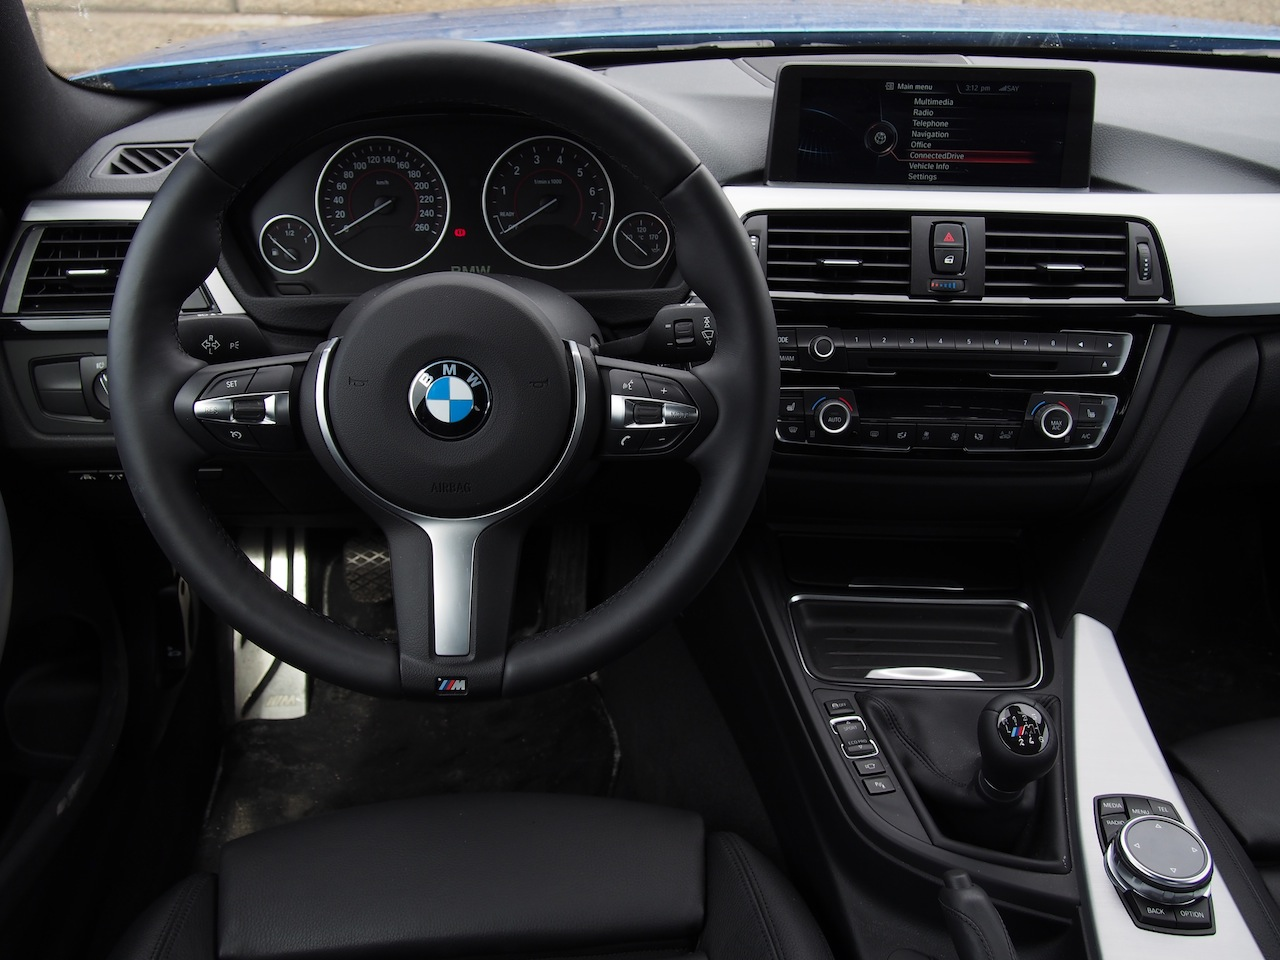 2014 Bmw 435i Xdrive Review Cars Photos Test Drives